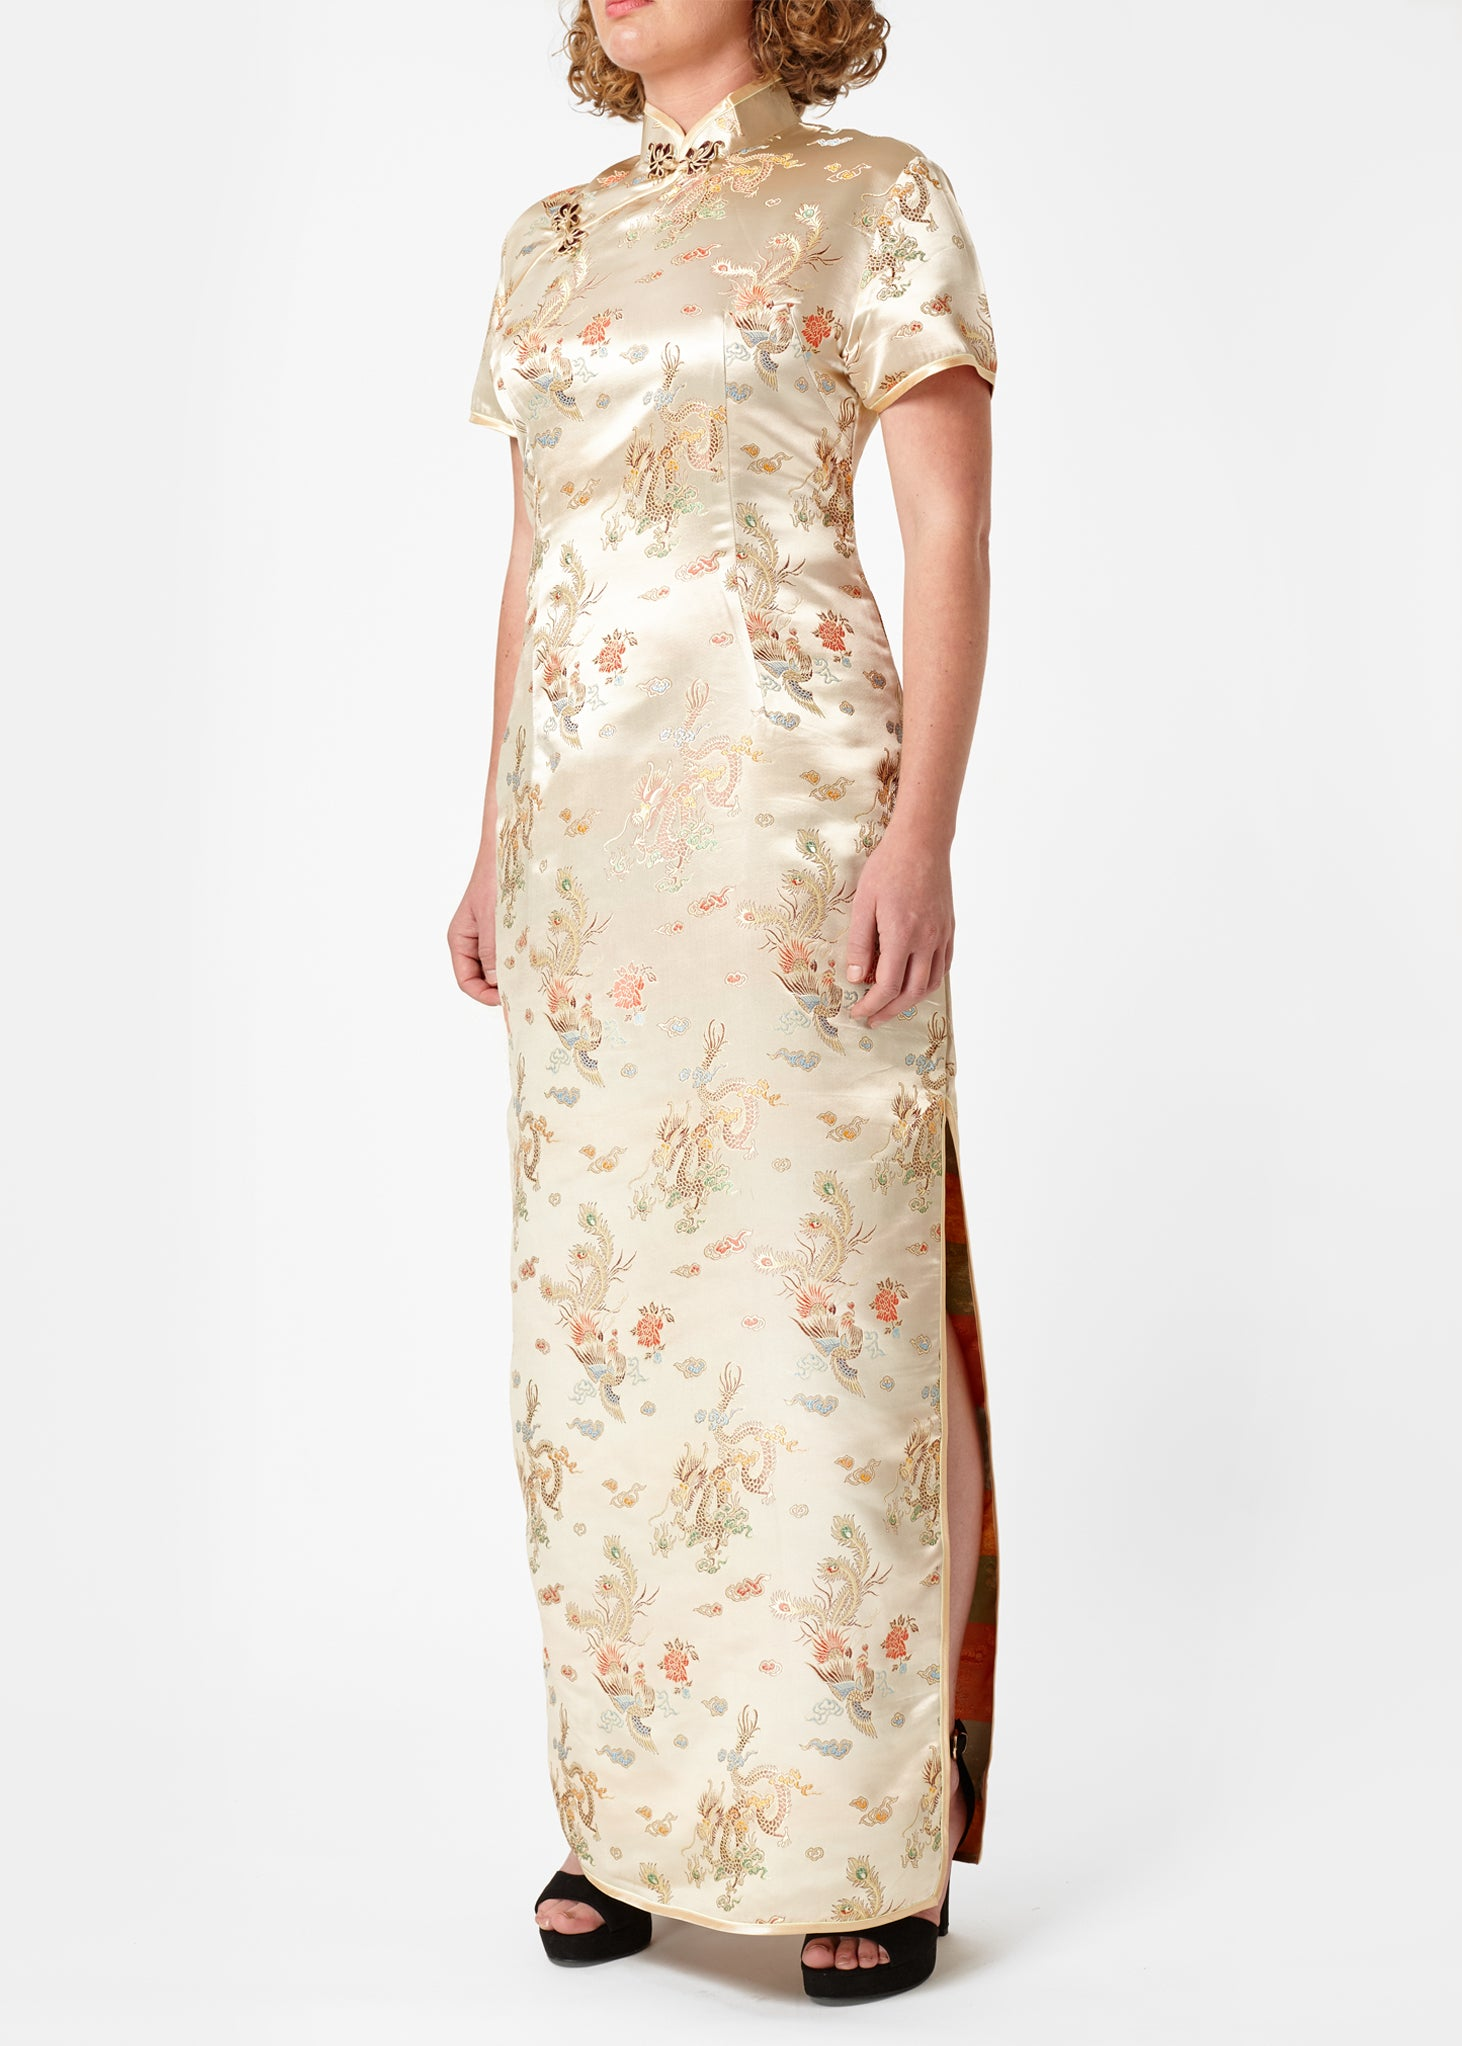 The Cheongsam or Qipao, is a feminine body-hugging dress with distinctive Chinese features of mandarin collar, side splits and hand stitched flower and knot frog fastenings. Manufactured in authentic high quality silk/rayon brocade in a classic gold dragon and phoenix design - a symbol success and prosperity